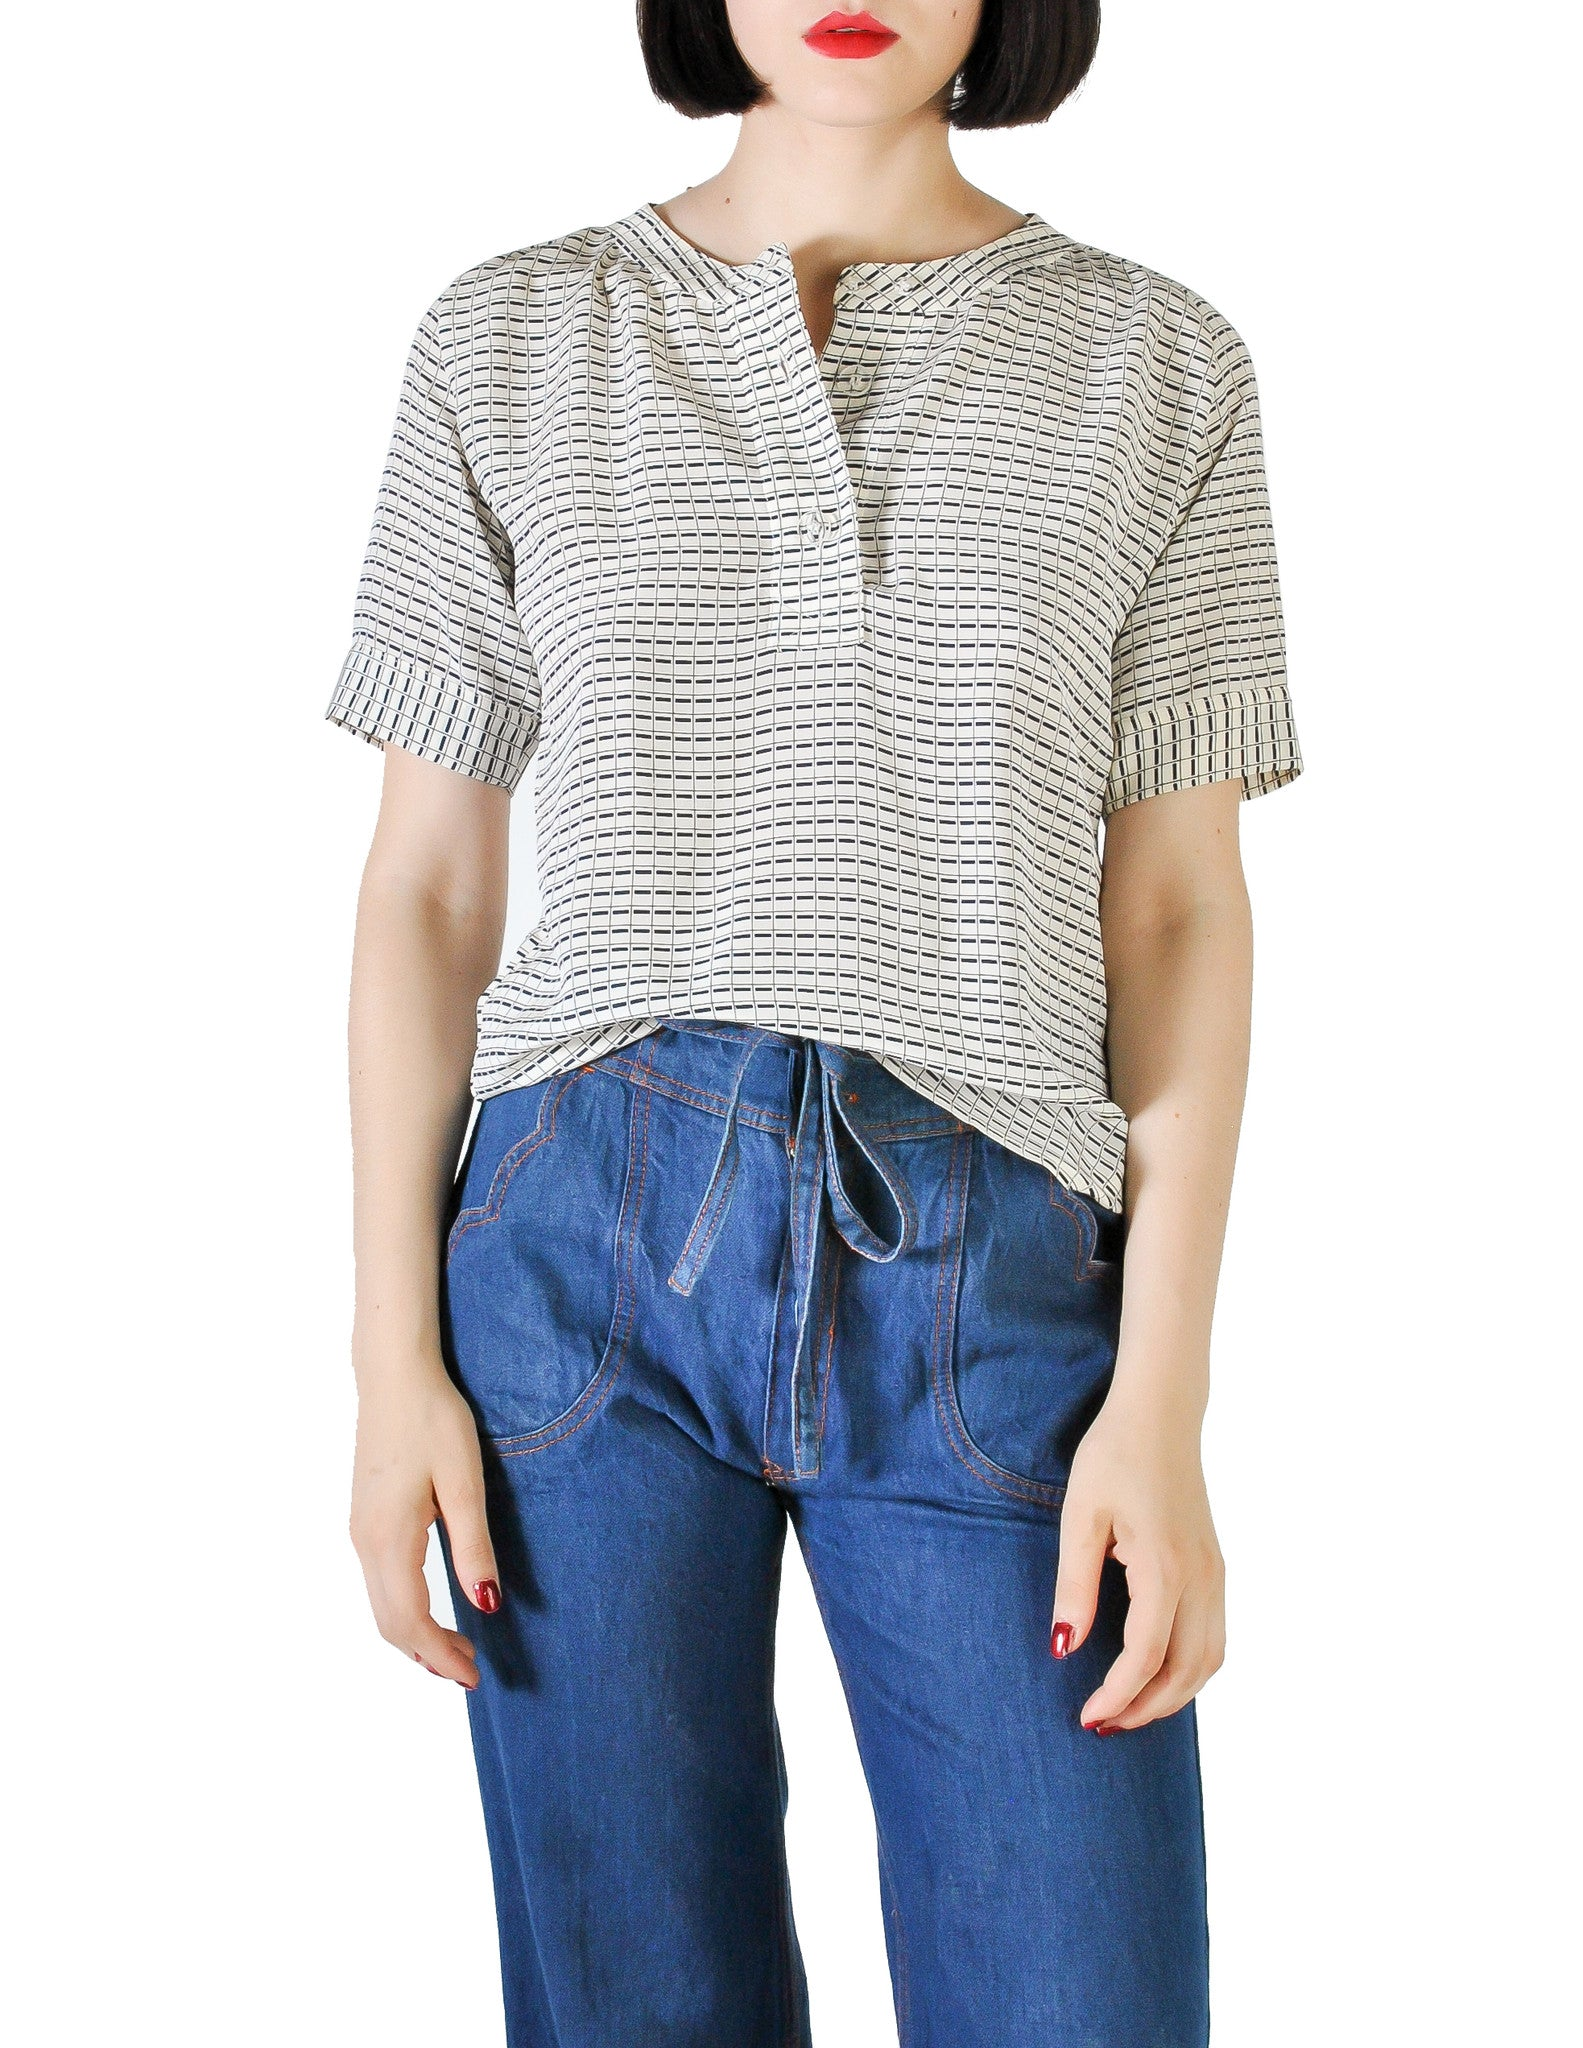 Chloé Vintage Navy Blue & Cream Grid Print Silk Top - Amarcord Vintage Fashion  - 1